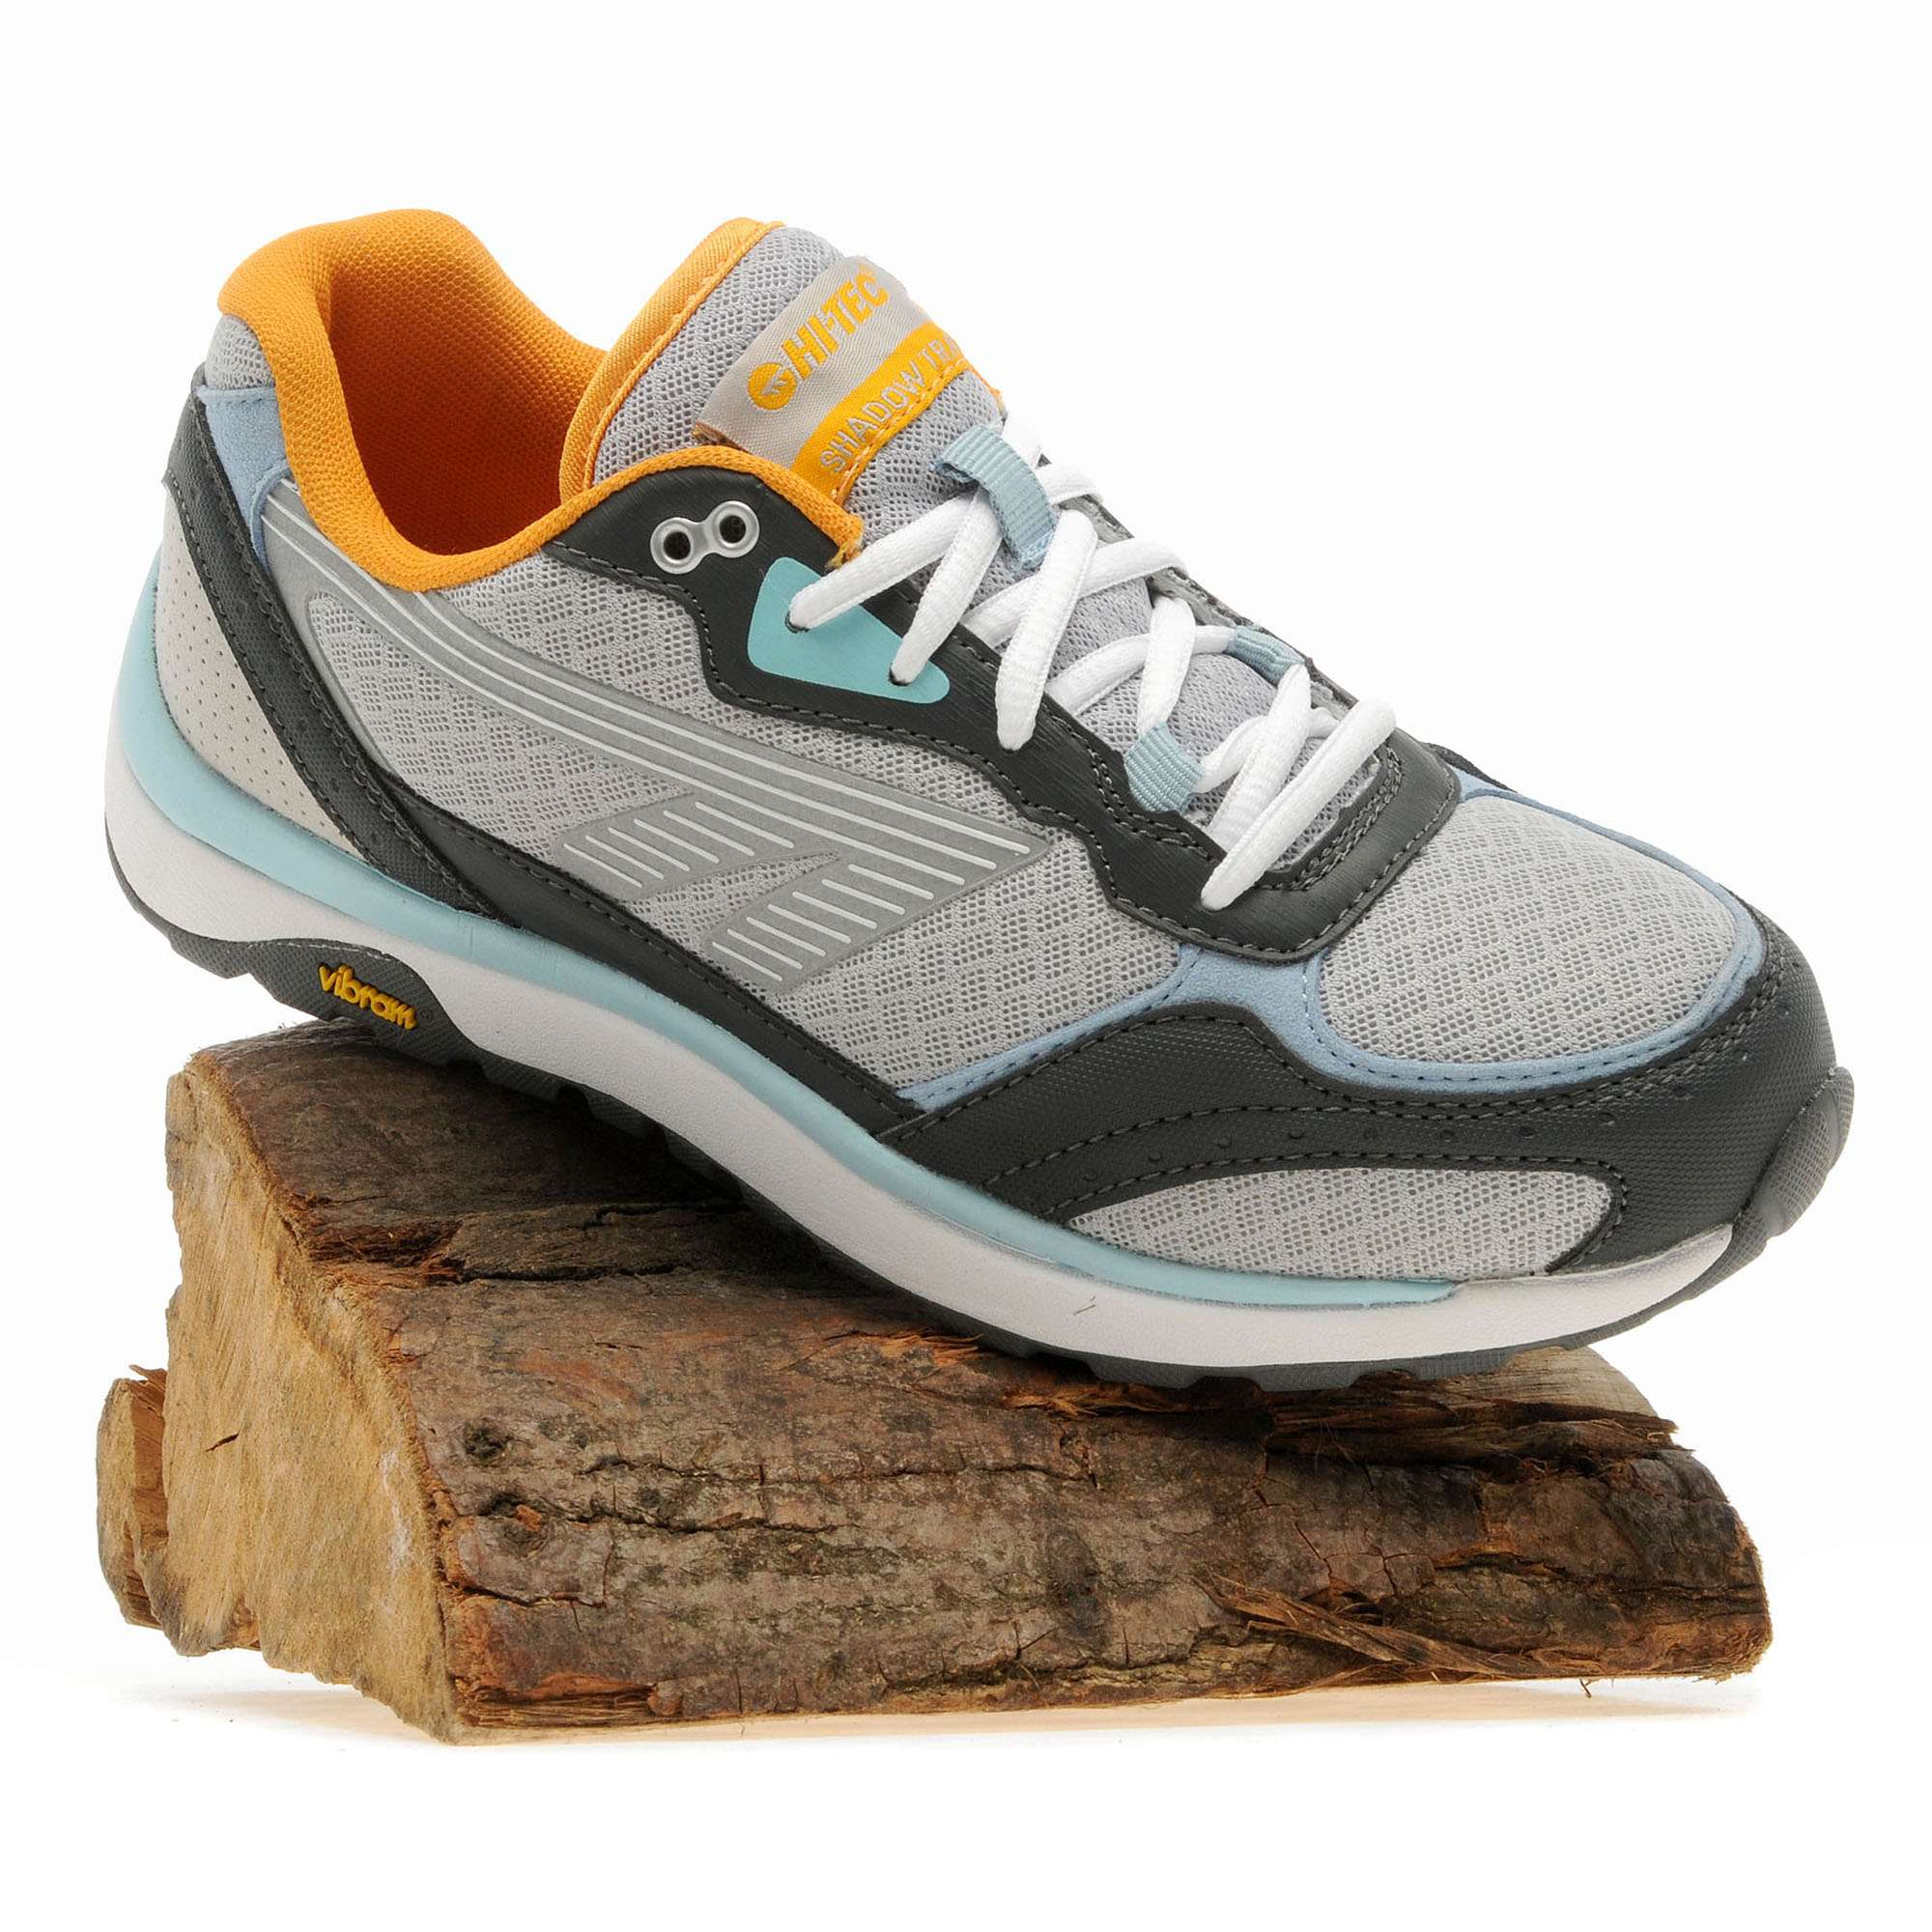 HI TEC Women's Shadow Trail Running Shoe